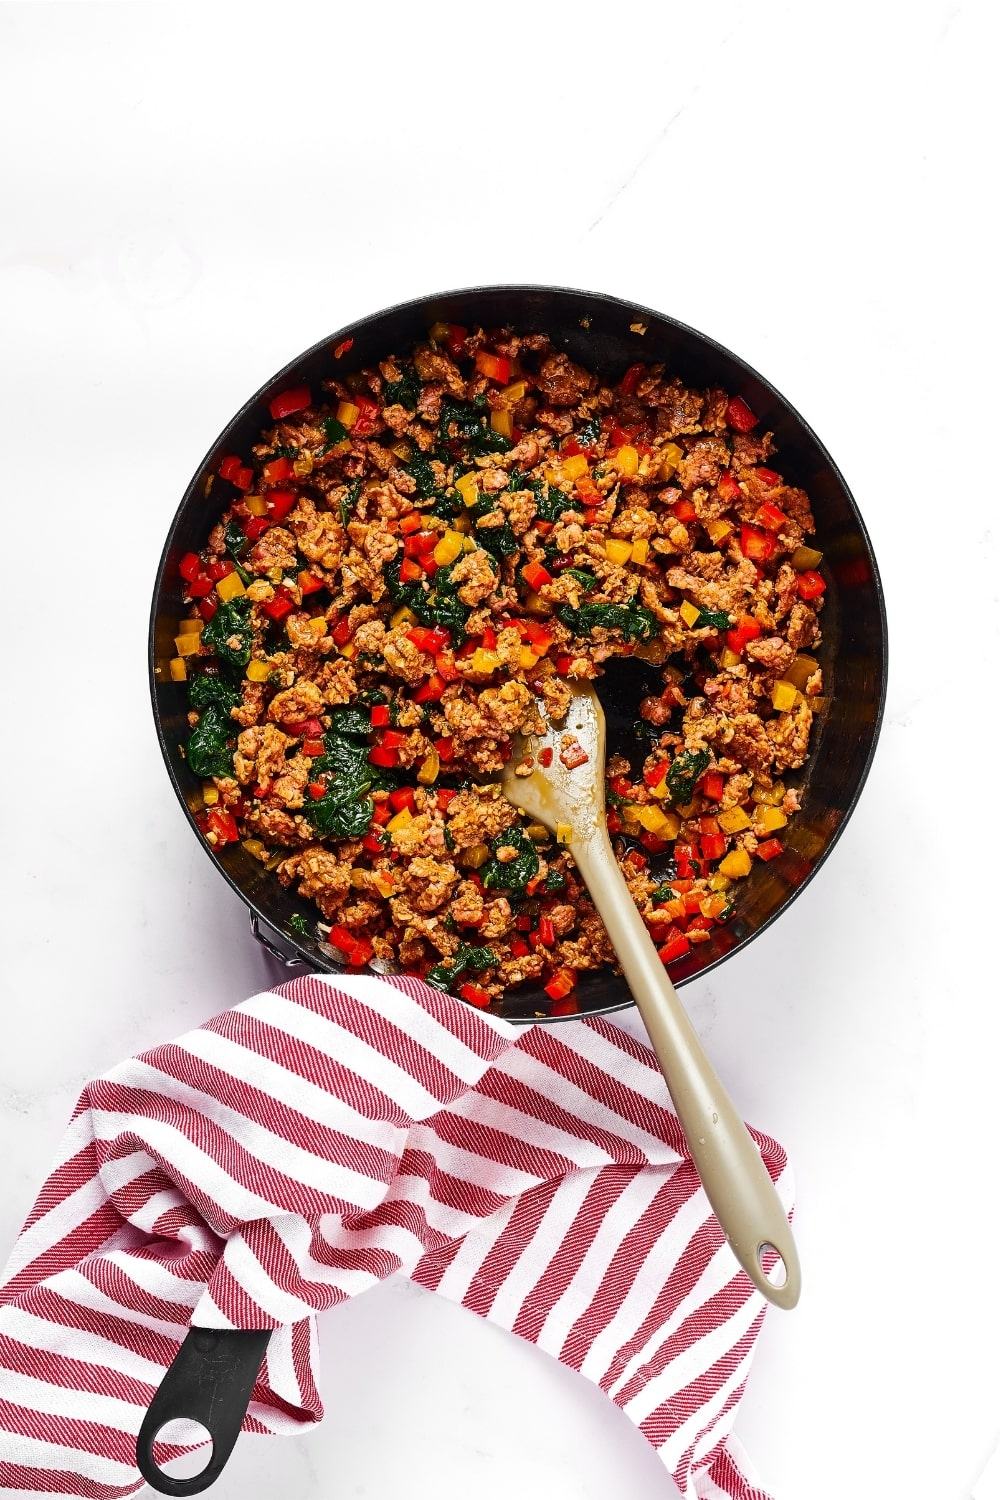 Black sauté pan with sausage crumbles, red and yellow peppers, and spinach with a wooden spoon in the middle of them. There is a red and white striped napkin on the handle.